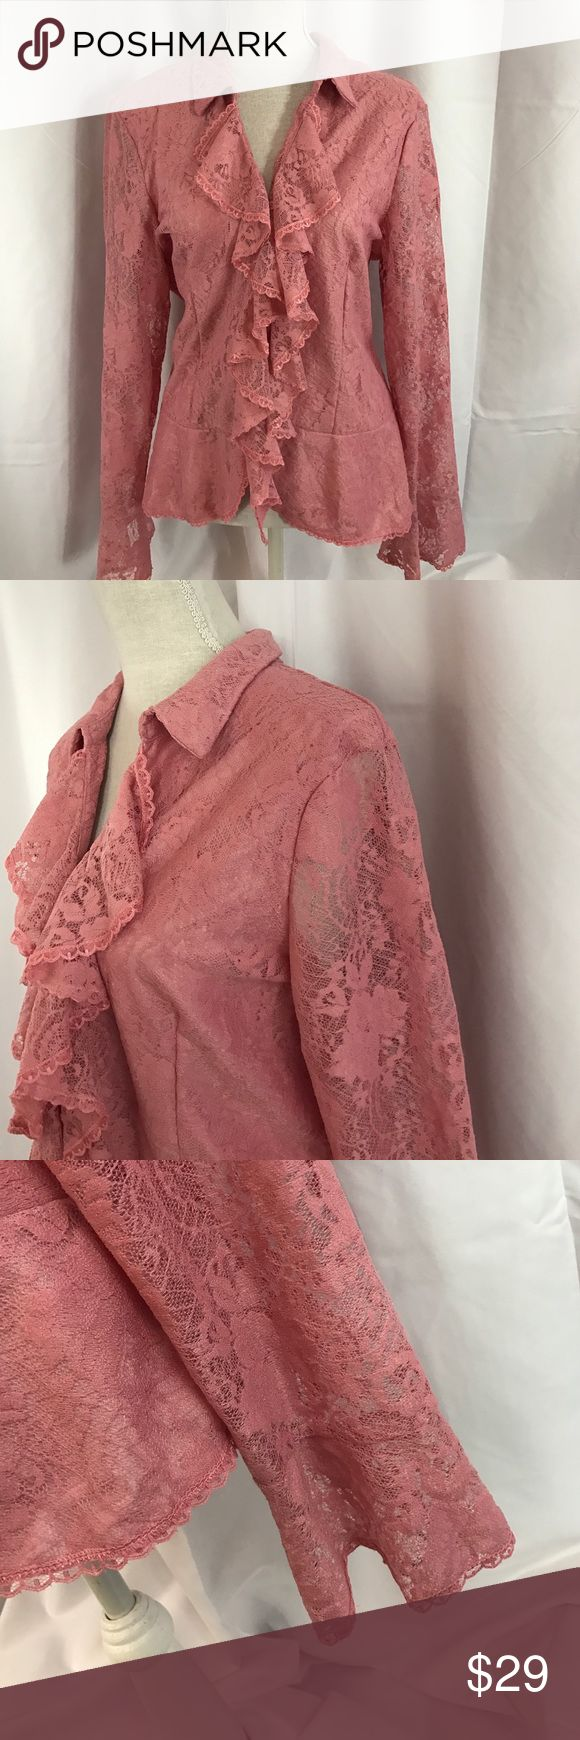 NWT Dialogue by QVC pink lace ruffle button down NWT Dialogue by QVC szXL pink lace ruffle button down top... Dialogue Tops Button Down Shirts